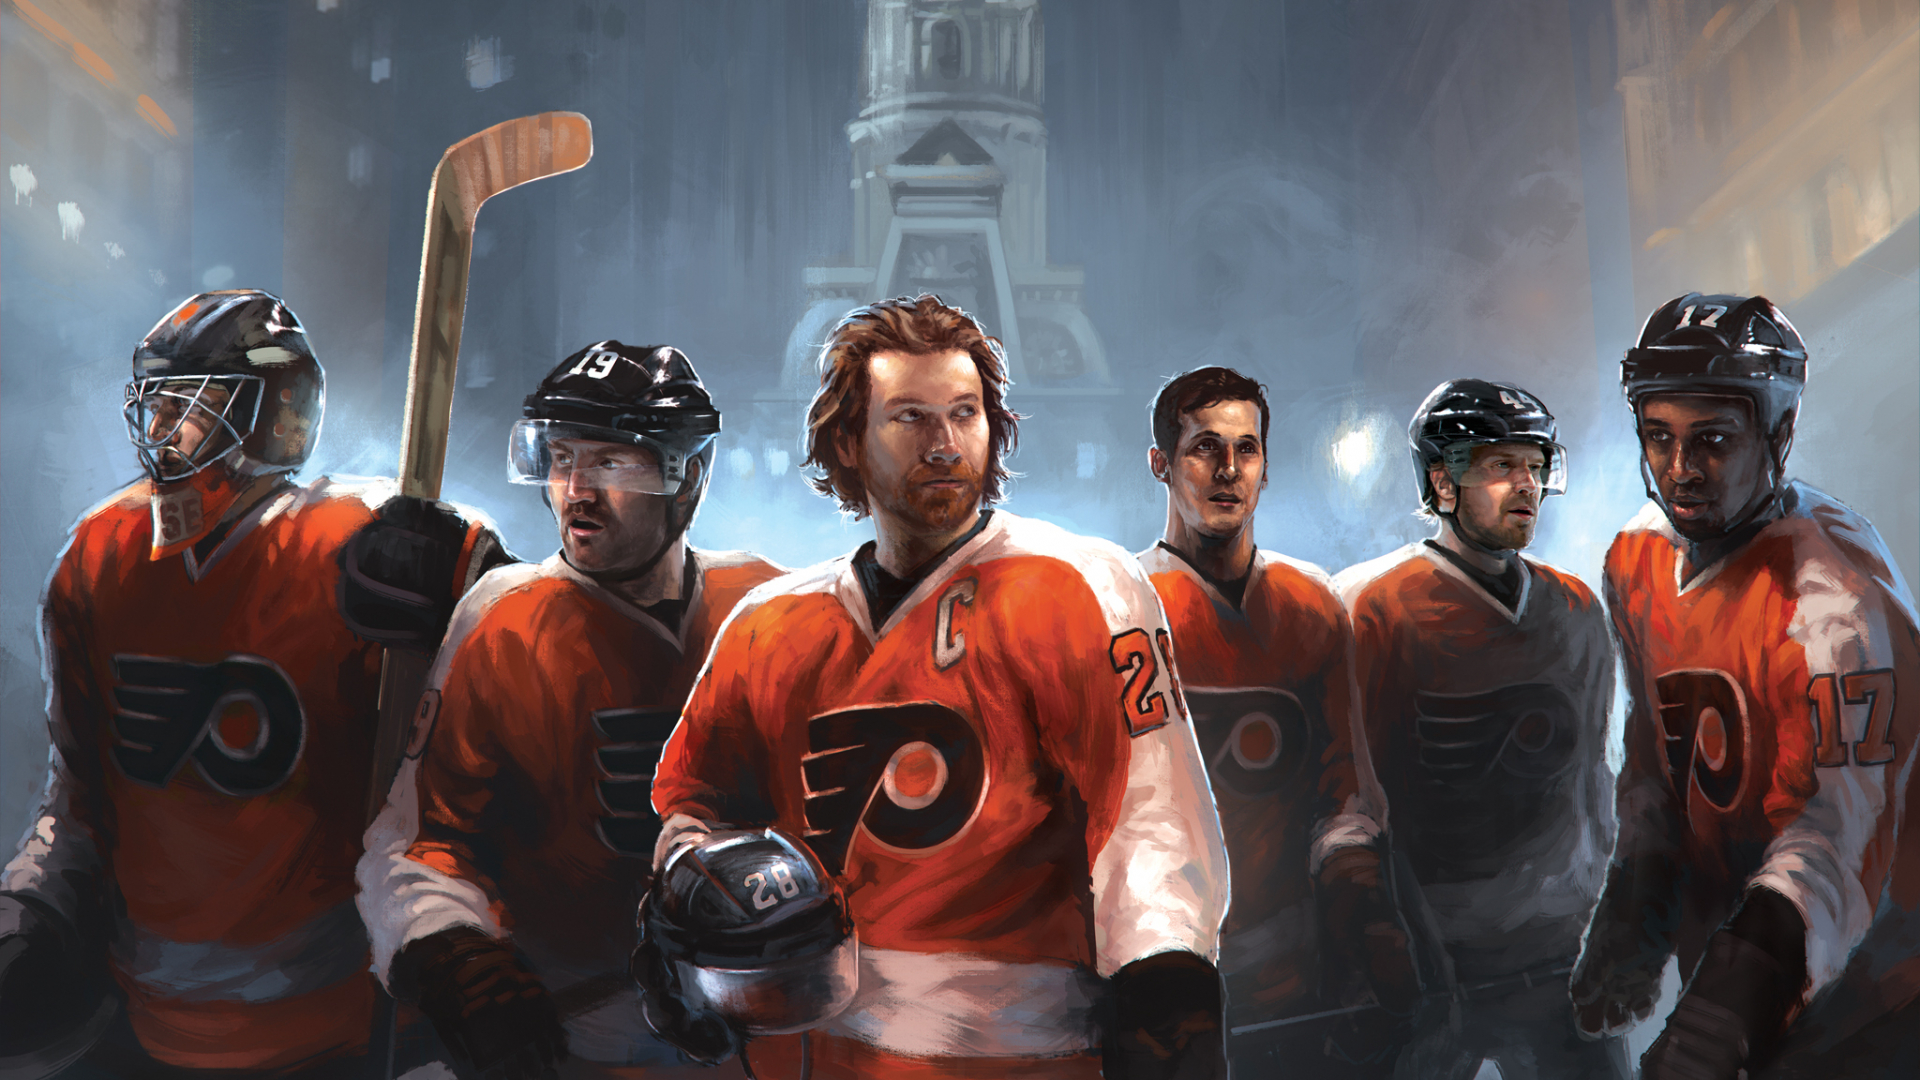 Philadelphia Flyers Wallpaper 2048x1536 Download Resolutions Desktop 1920x1080